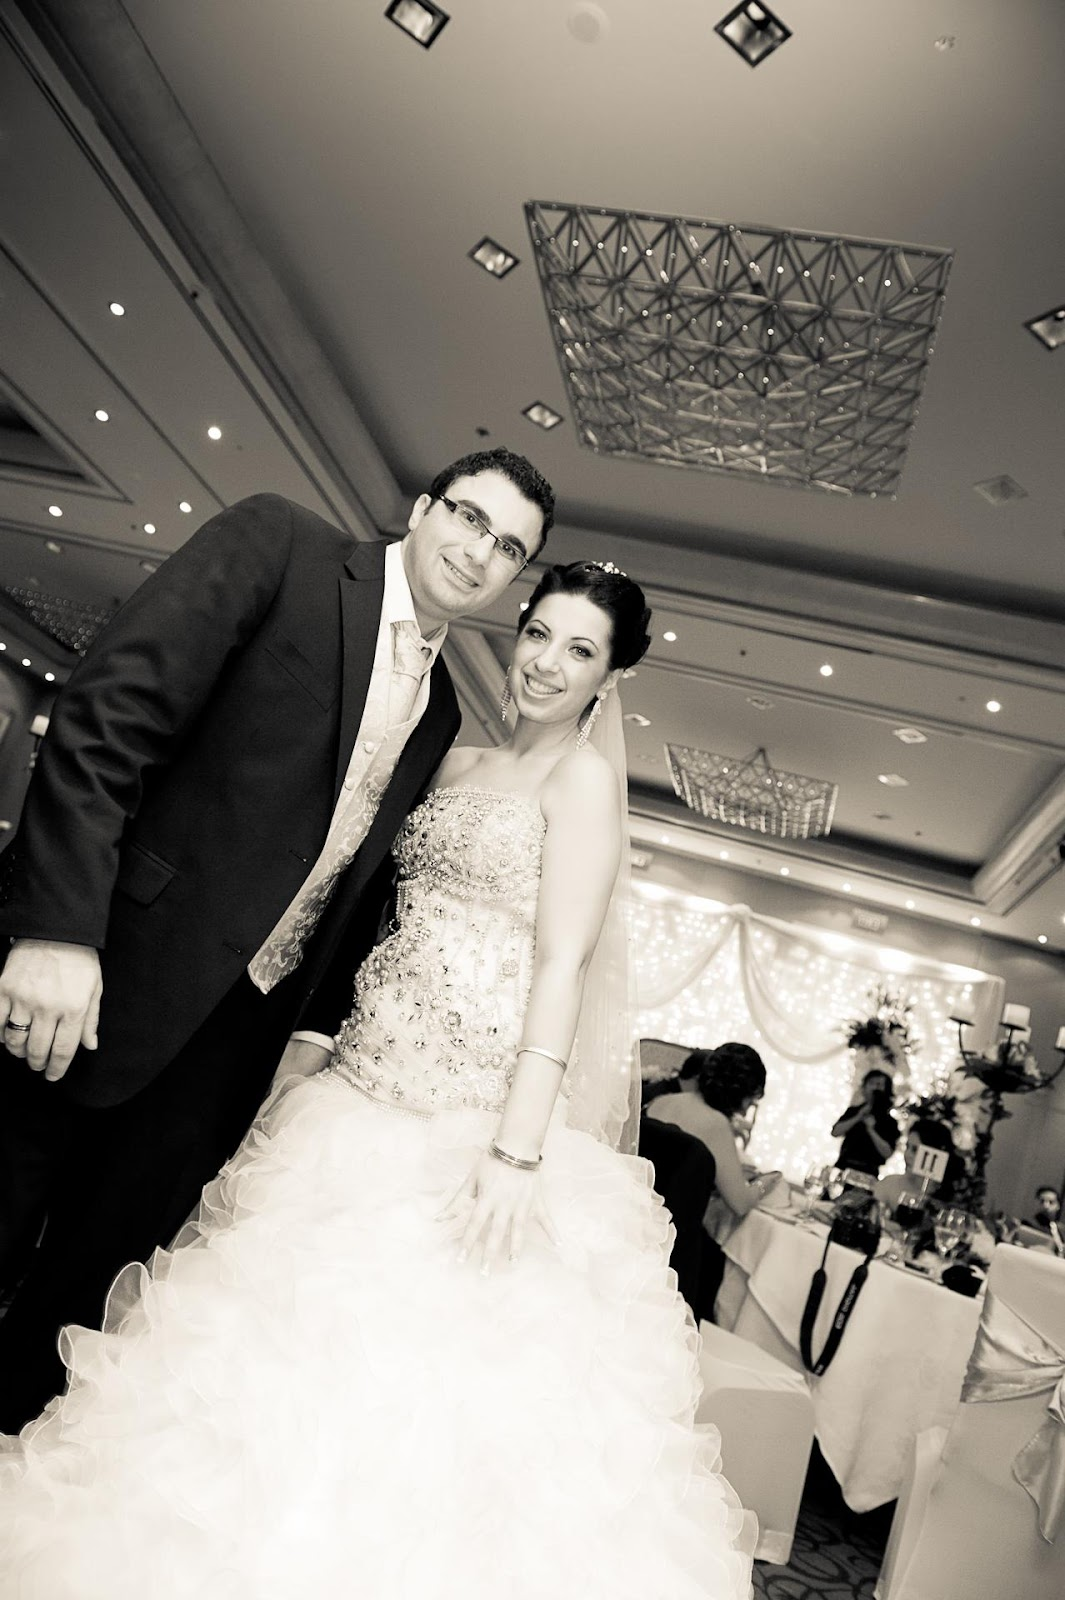 Mazen and Hiba wedding